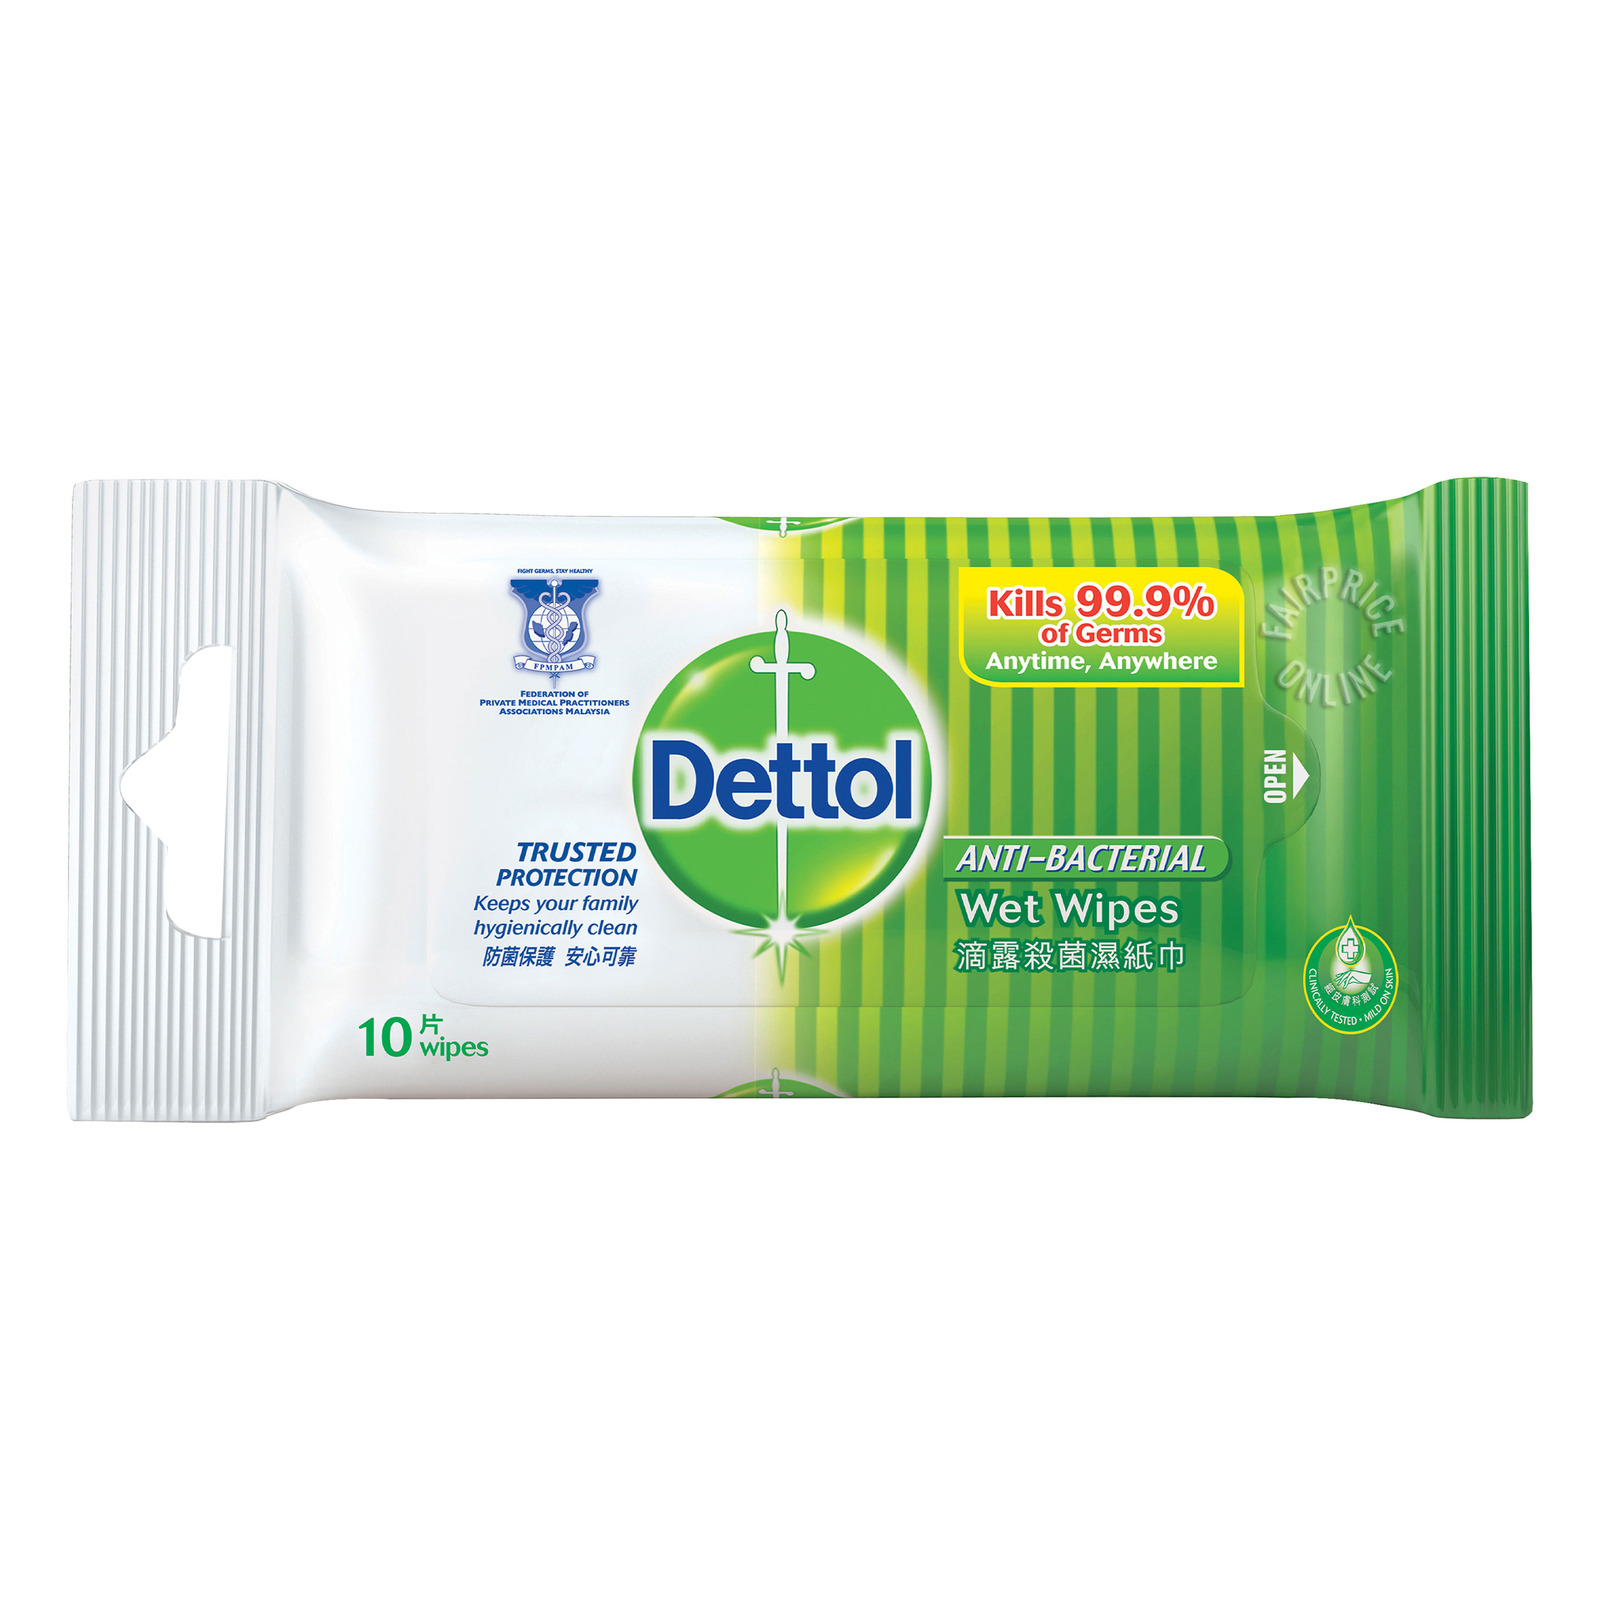 DETTOL Anti-Bacterial Sensitive Wet Wipes 10 Sheets